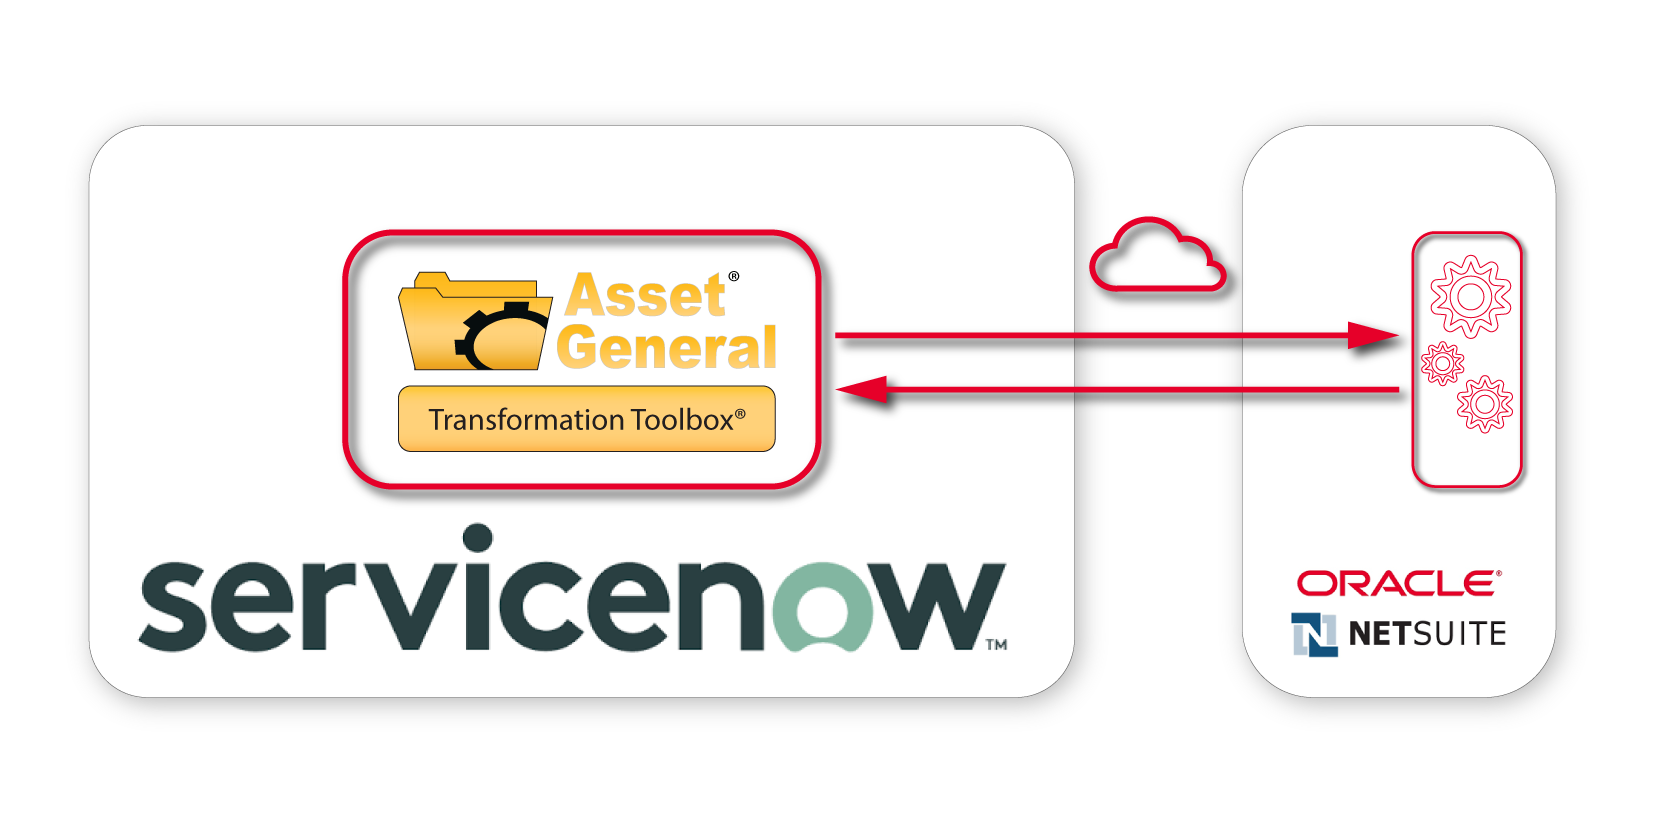 Natively Integrate ServiceNow with Oracle NetSuite from a ServiceNow Instance